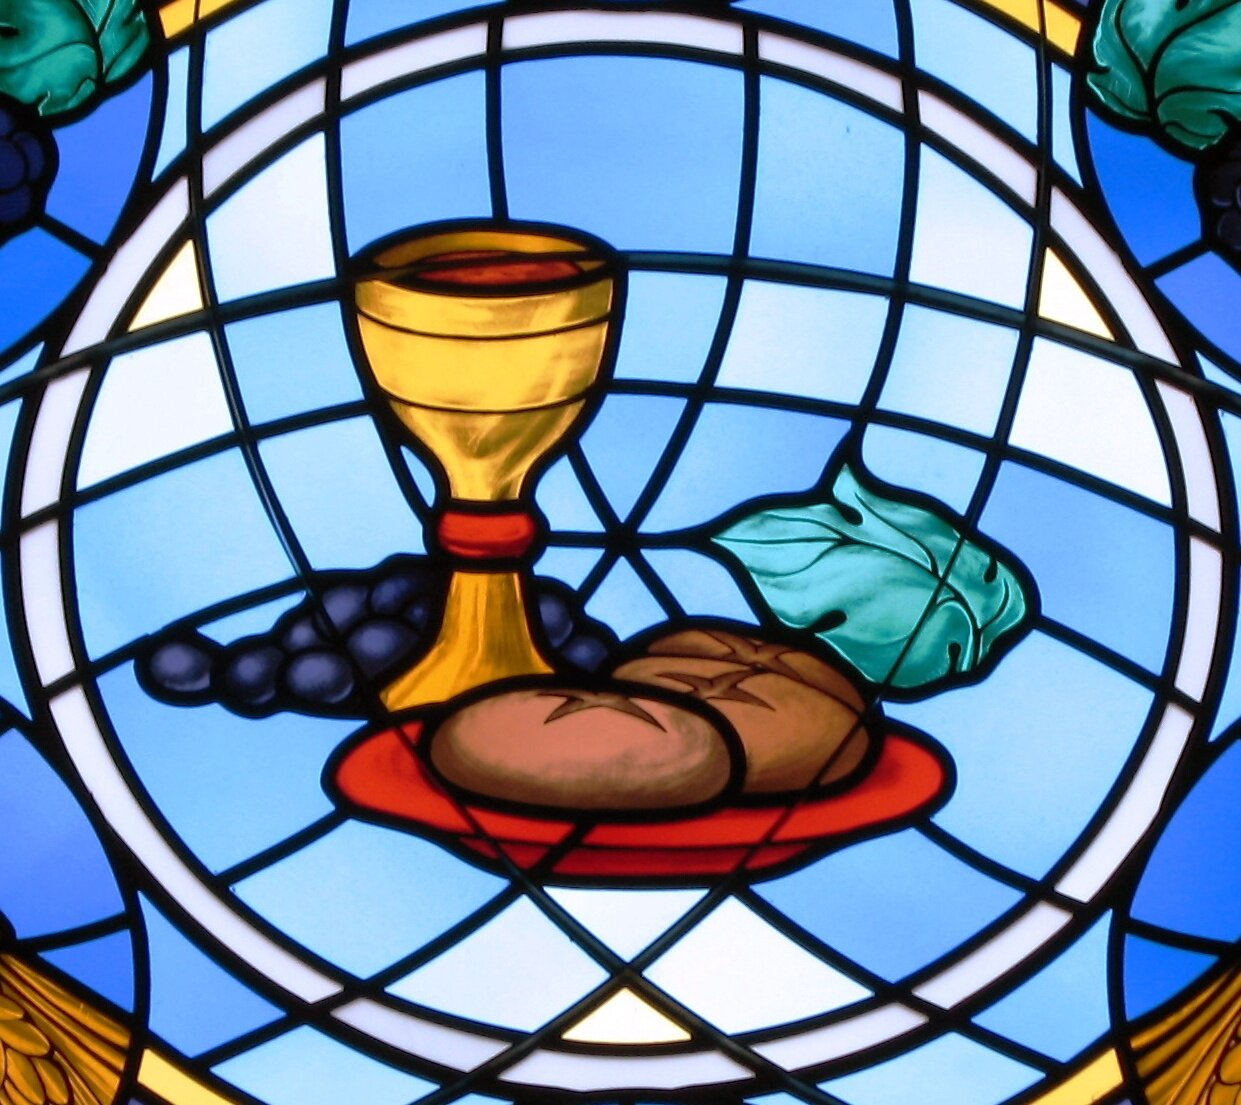 St_Michael_the_Archangel,_Findlay,_OH_-_bread_and_wine_crop_1.jpg